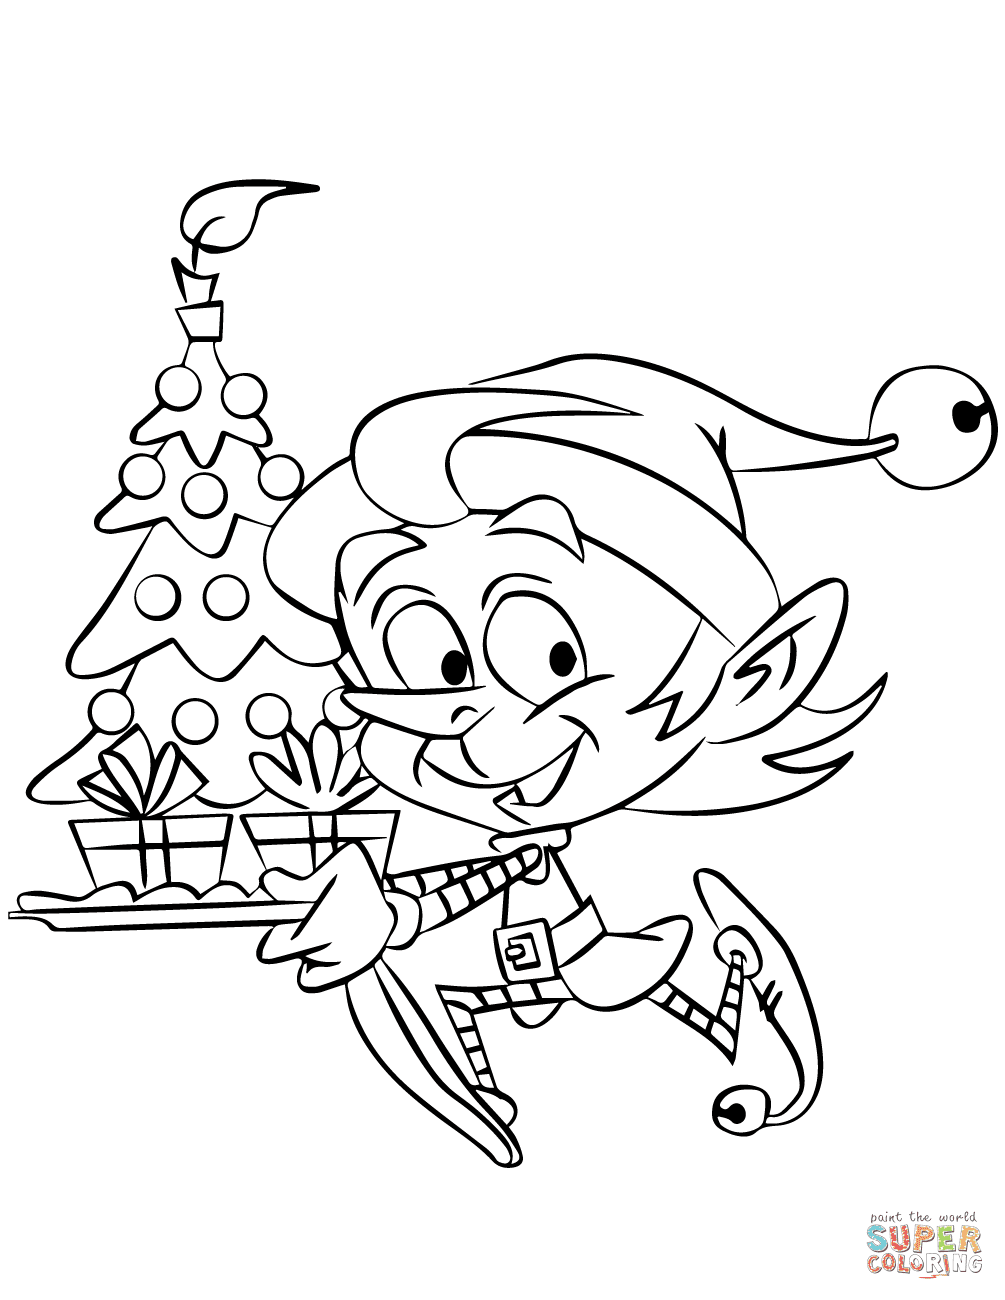 Christmas Elf Running with a Tree coloring page | Free ...